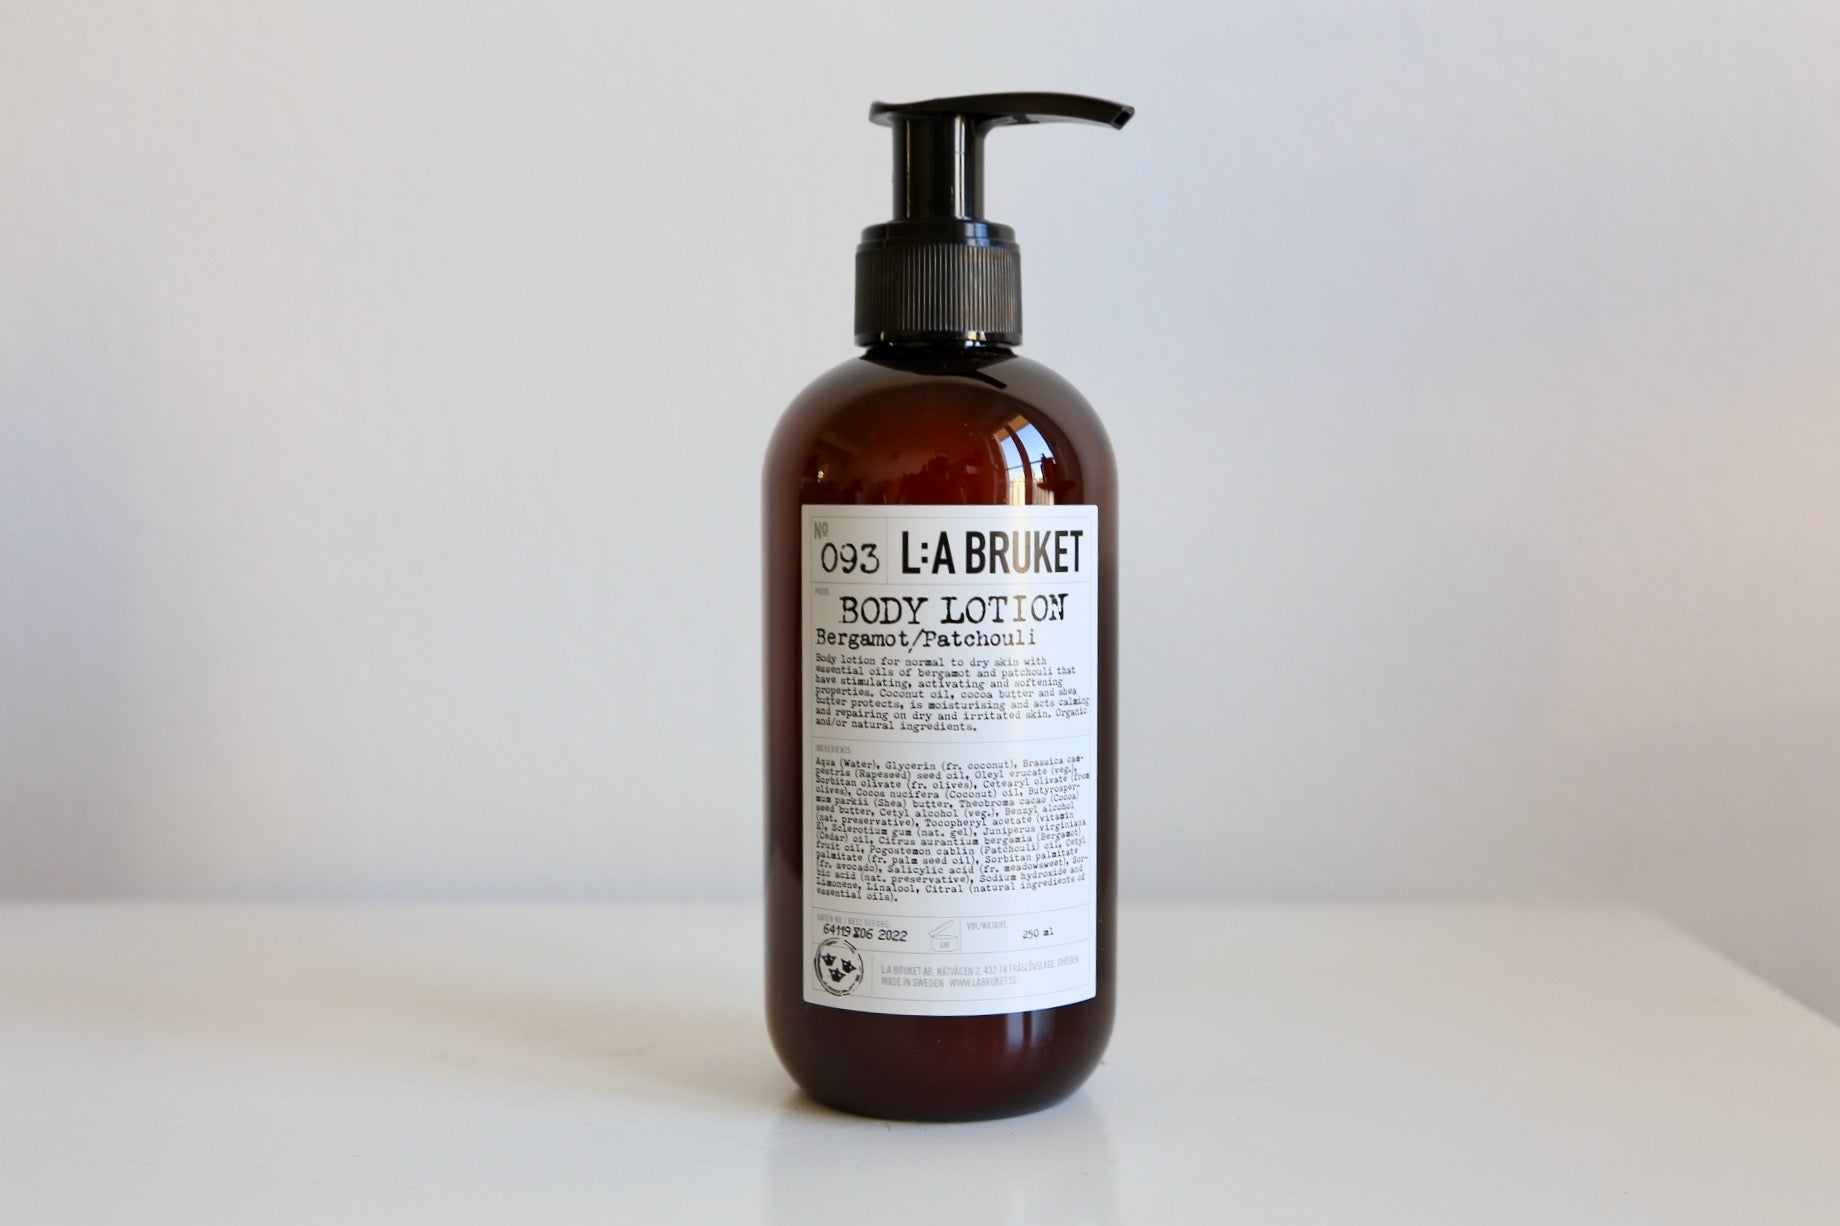 093 Body Lotion | Bergamot and Patchouli - Noli